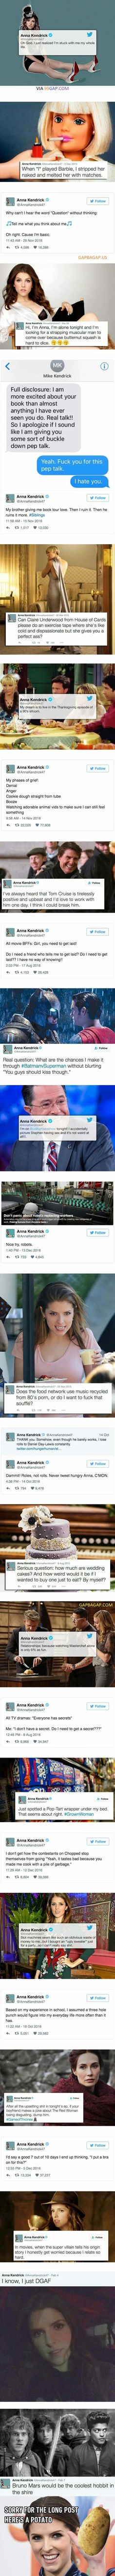 Hilarious Tweets Collection By Anna Kendrick